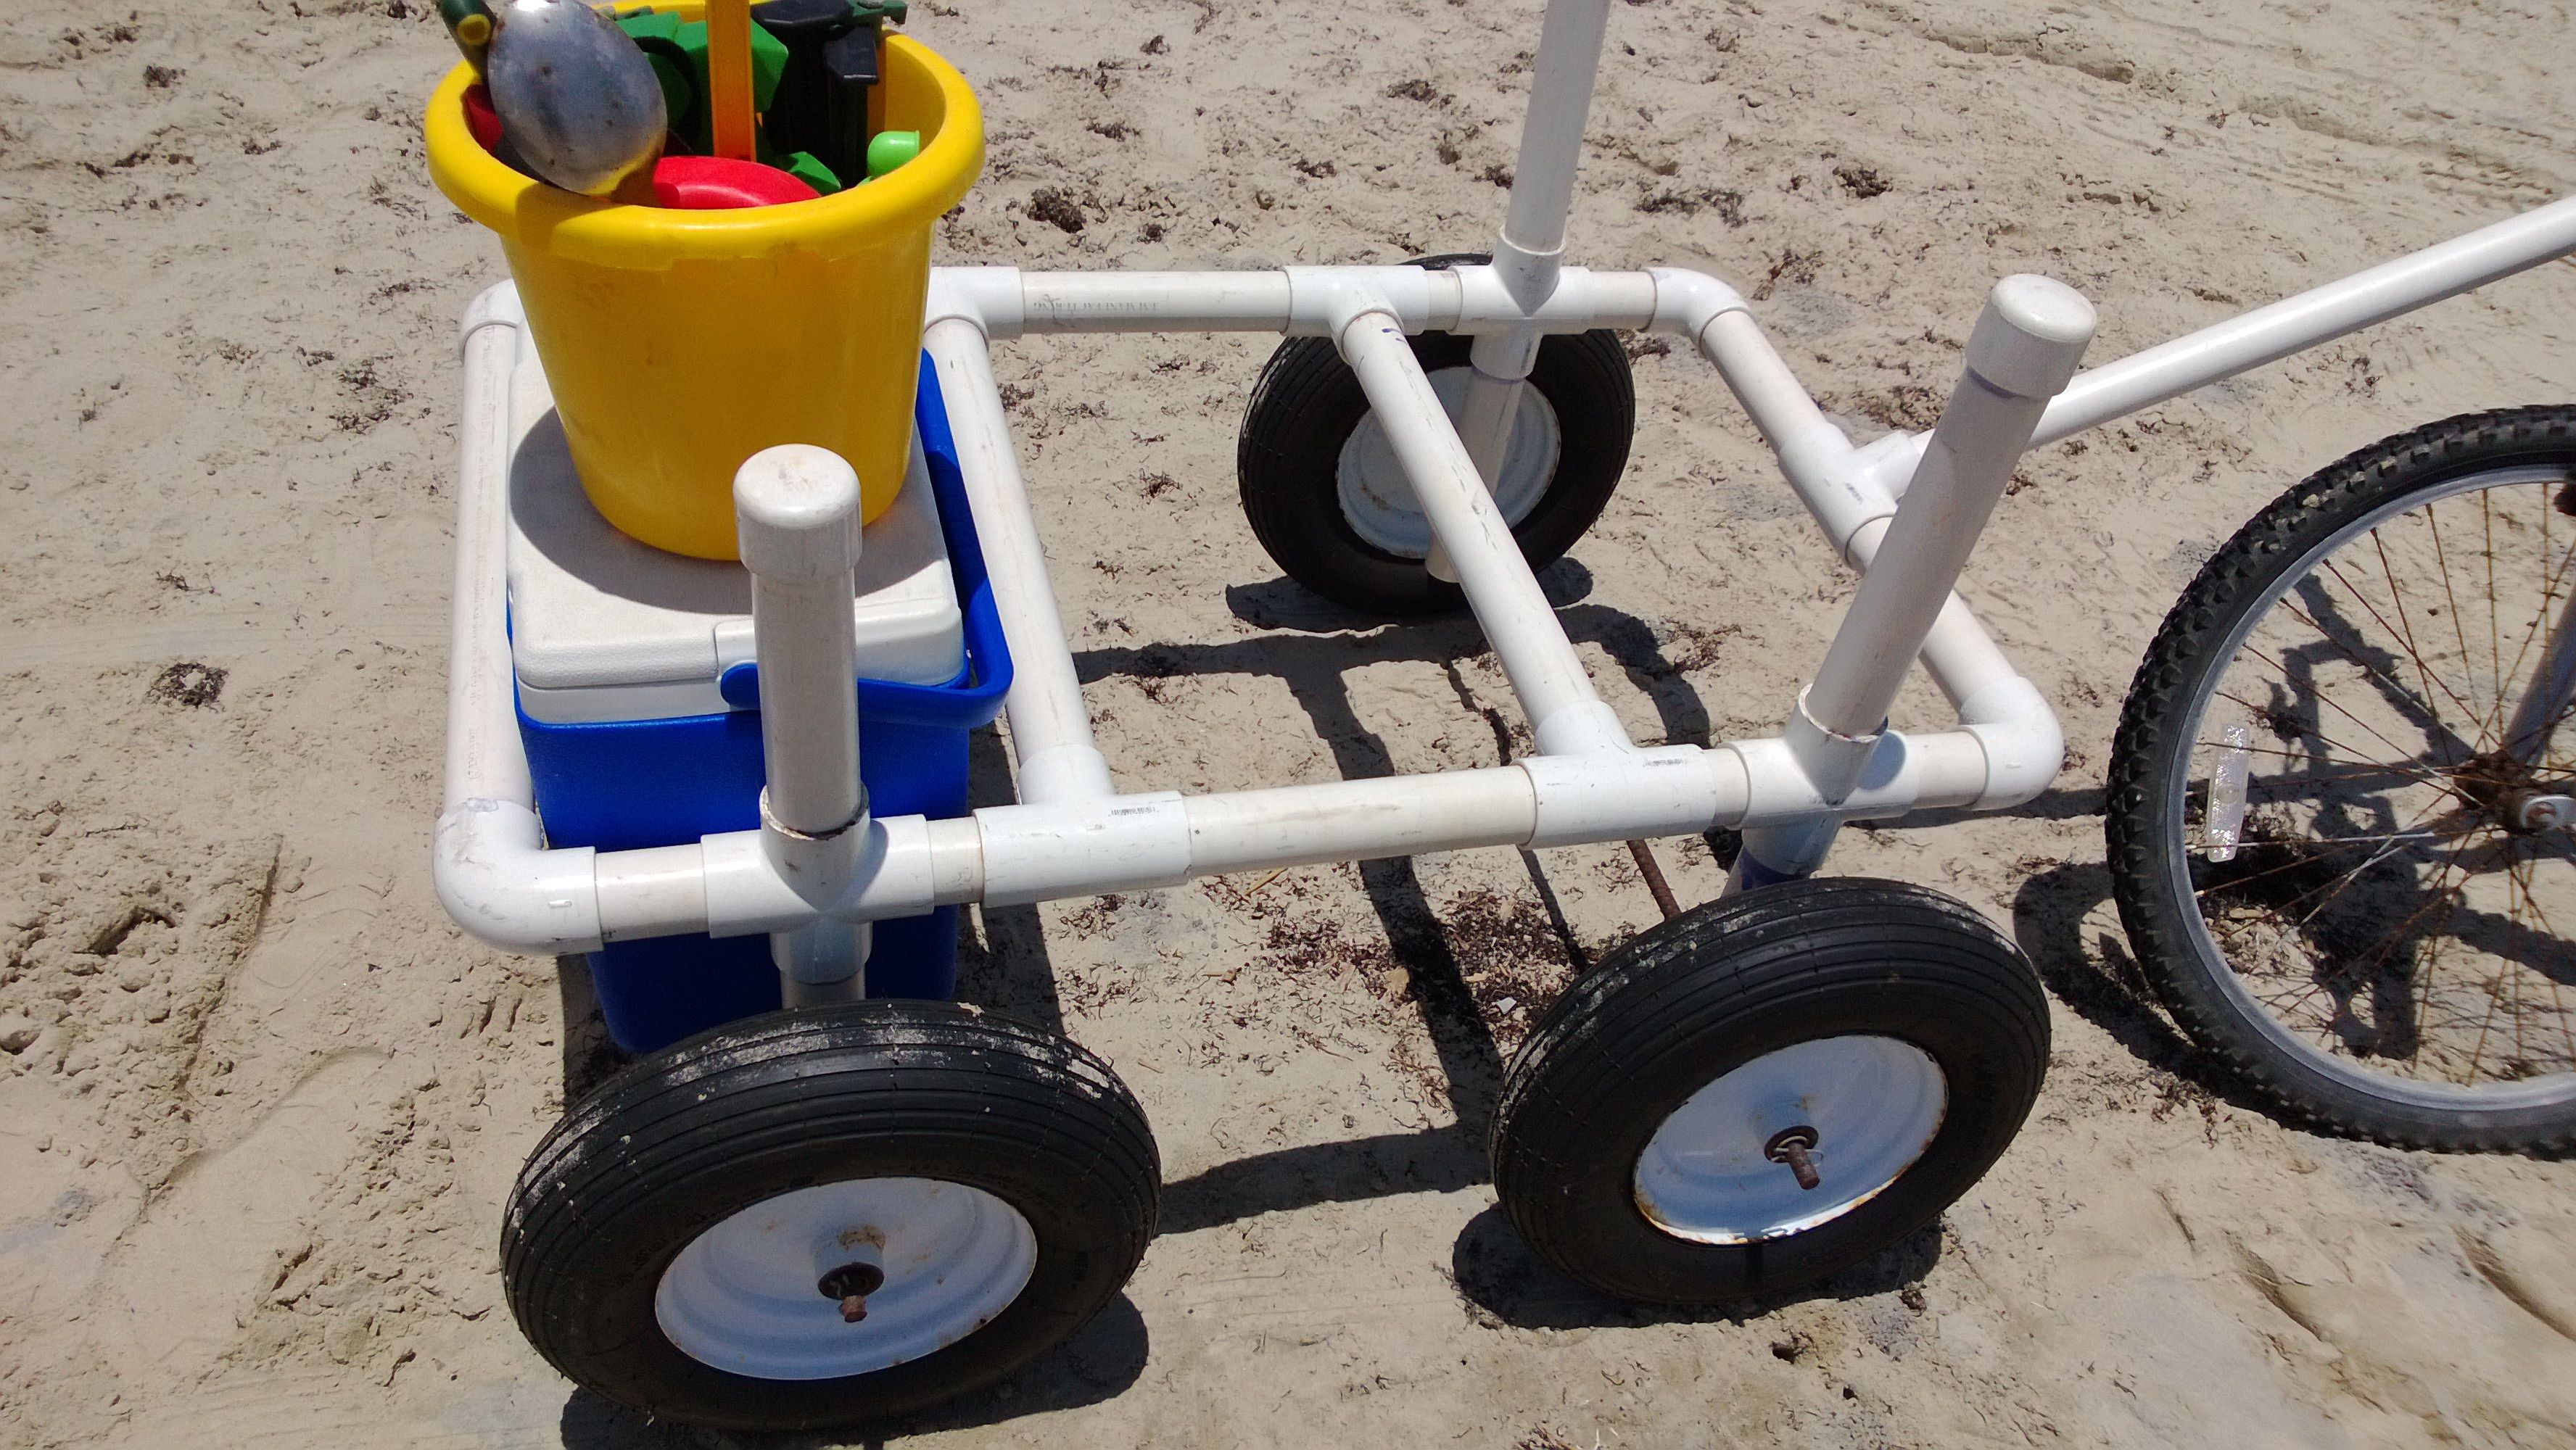 Diy beach cart itus lite weight wonut rust and can easily be